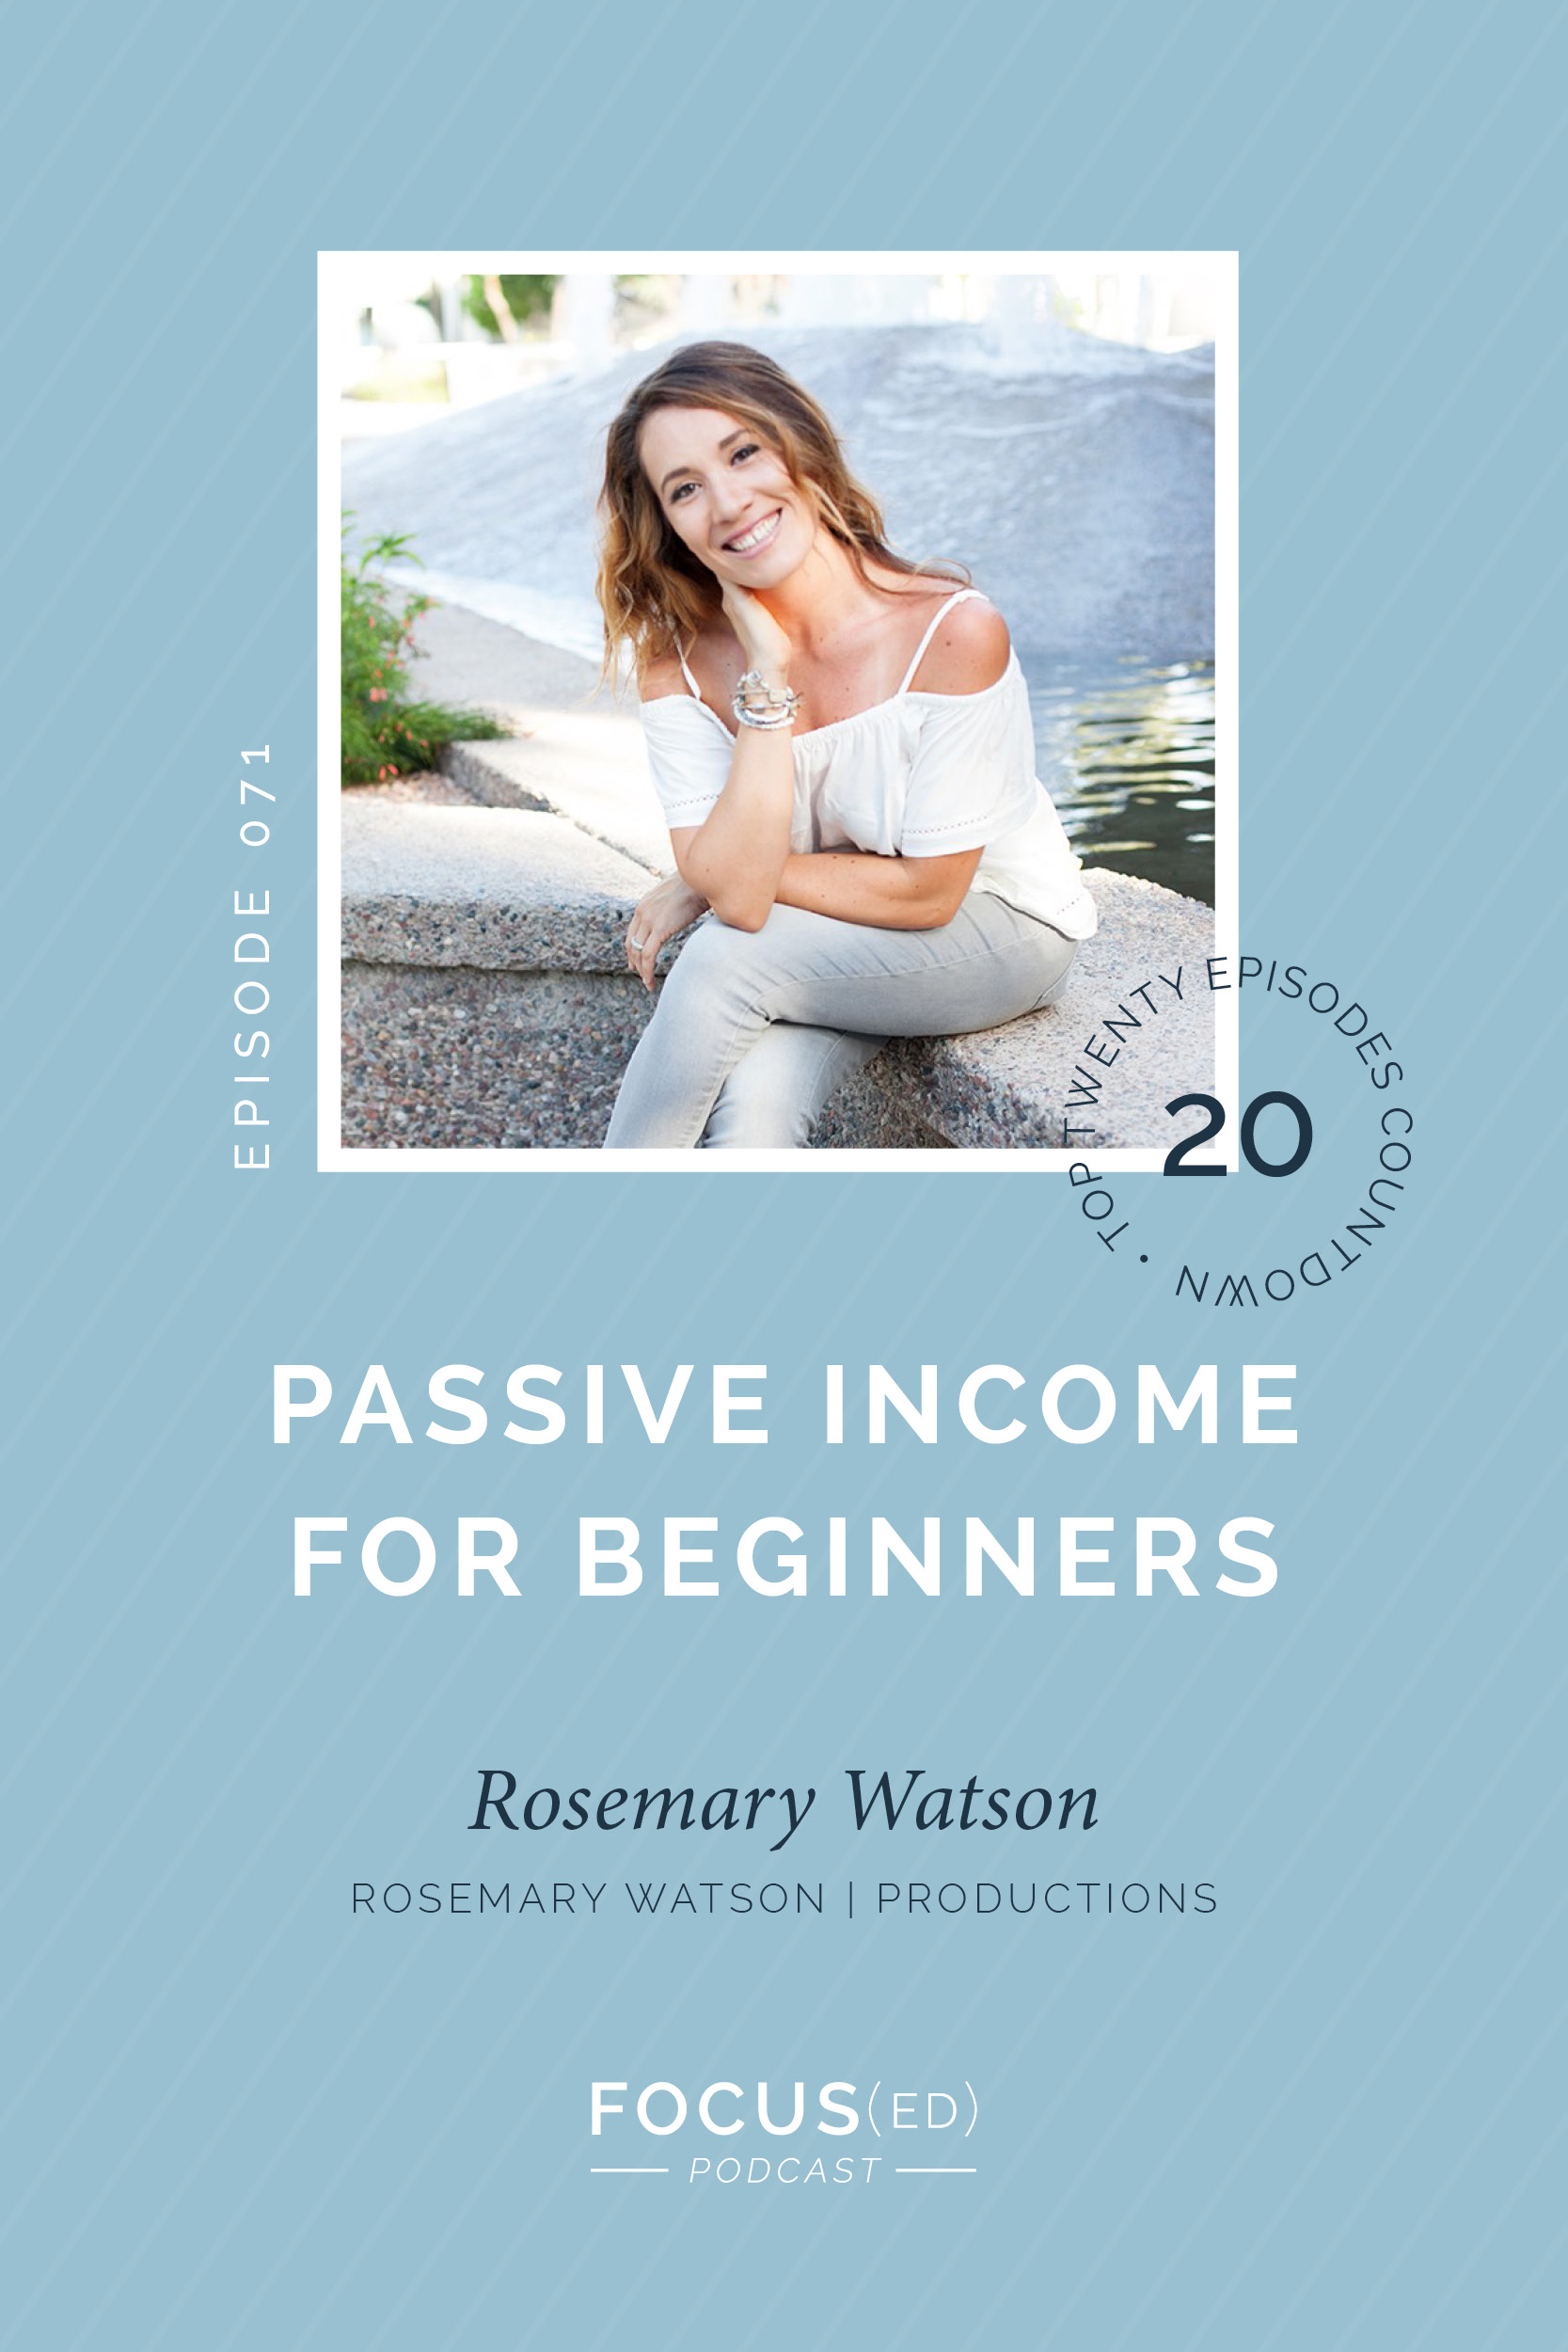 Passive Income for beginners with Rosemary Watson | Focus(ed) Podcast 071